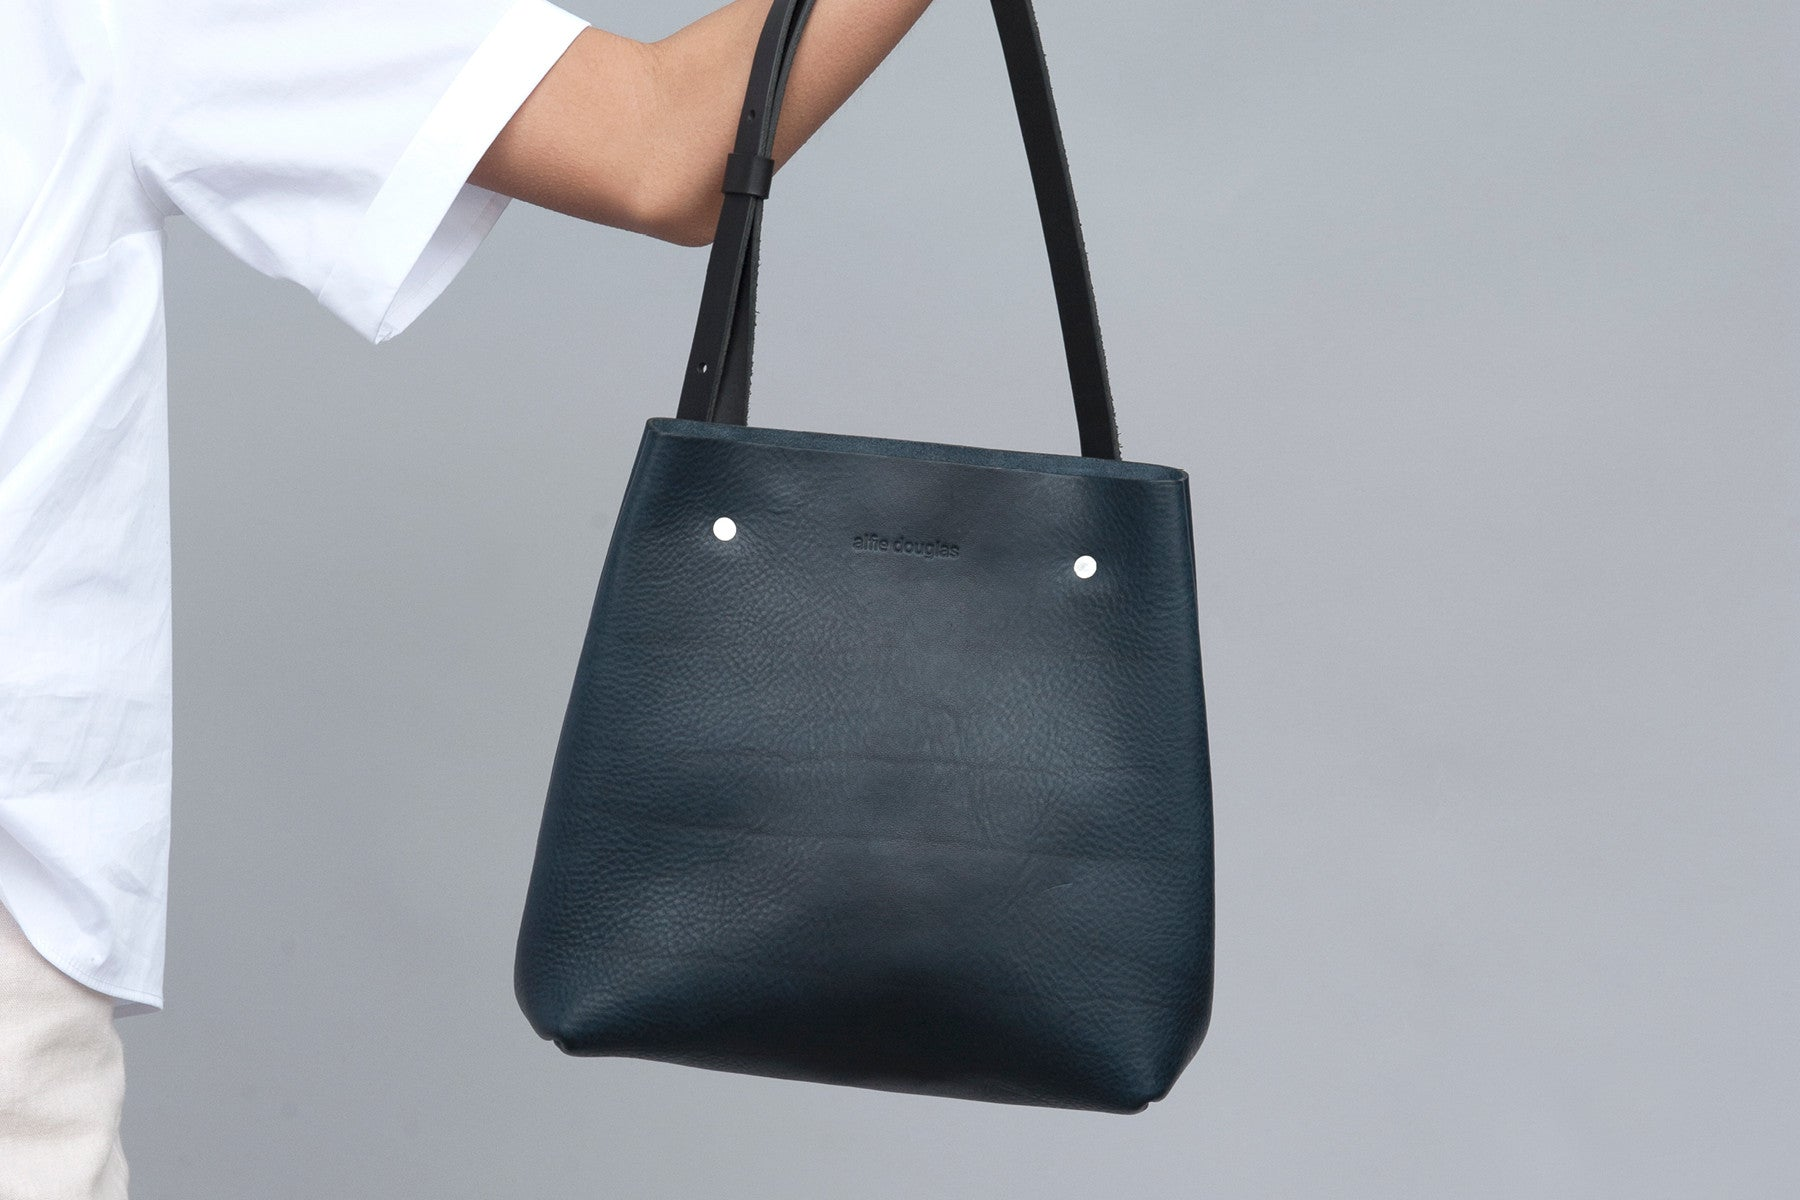 """You Need to Know About These 2-in-1 Leather Bags"" - Racked"